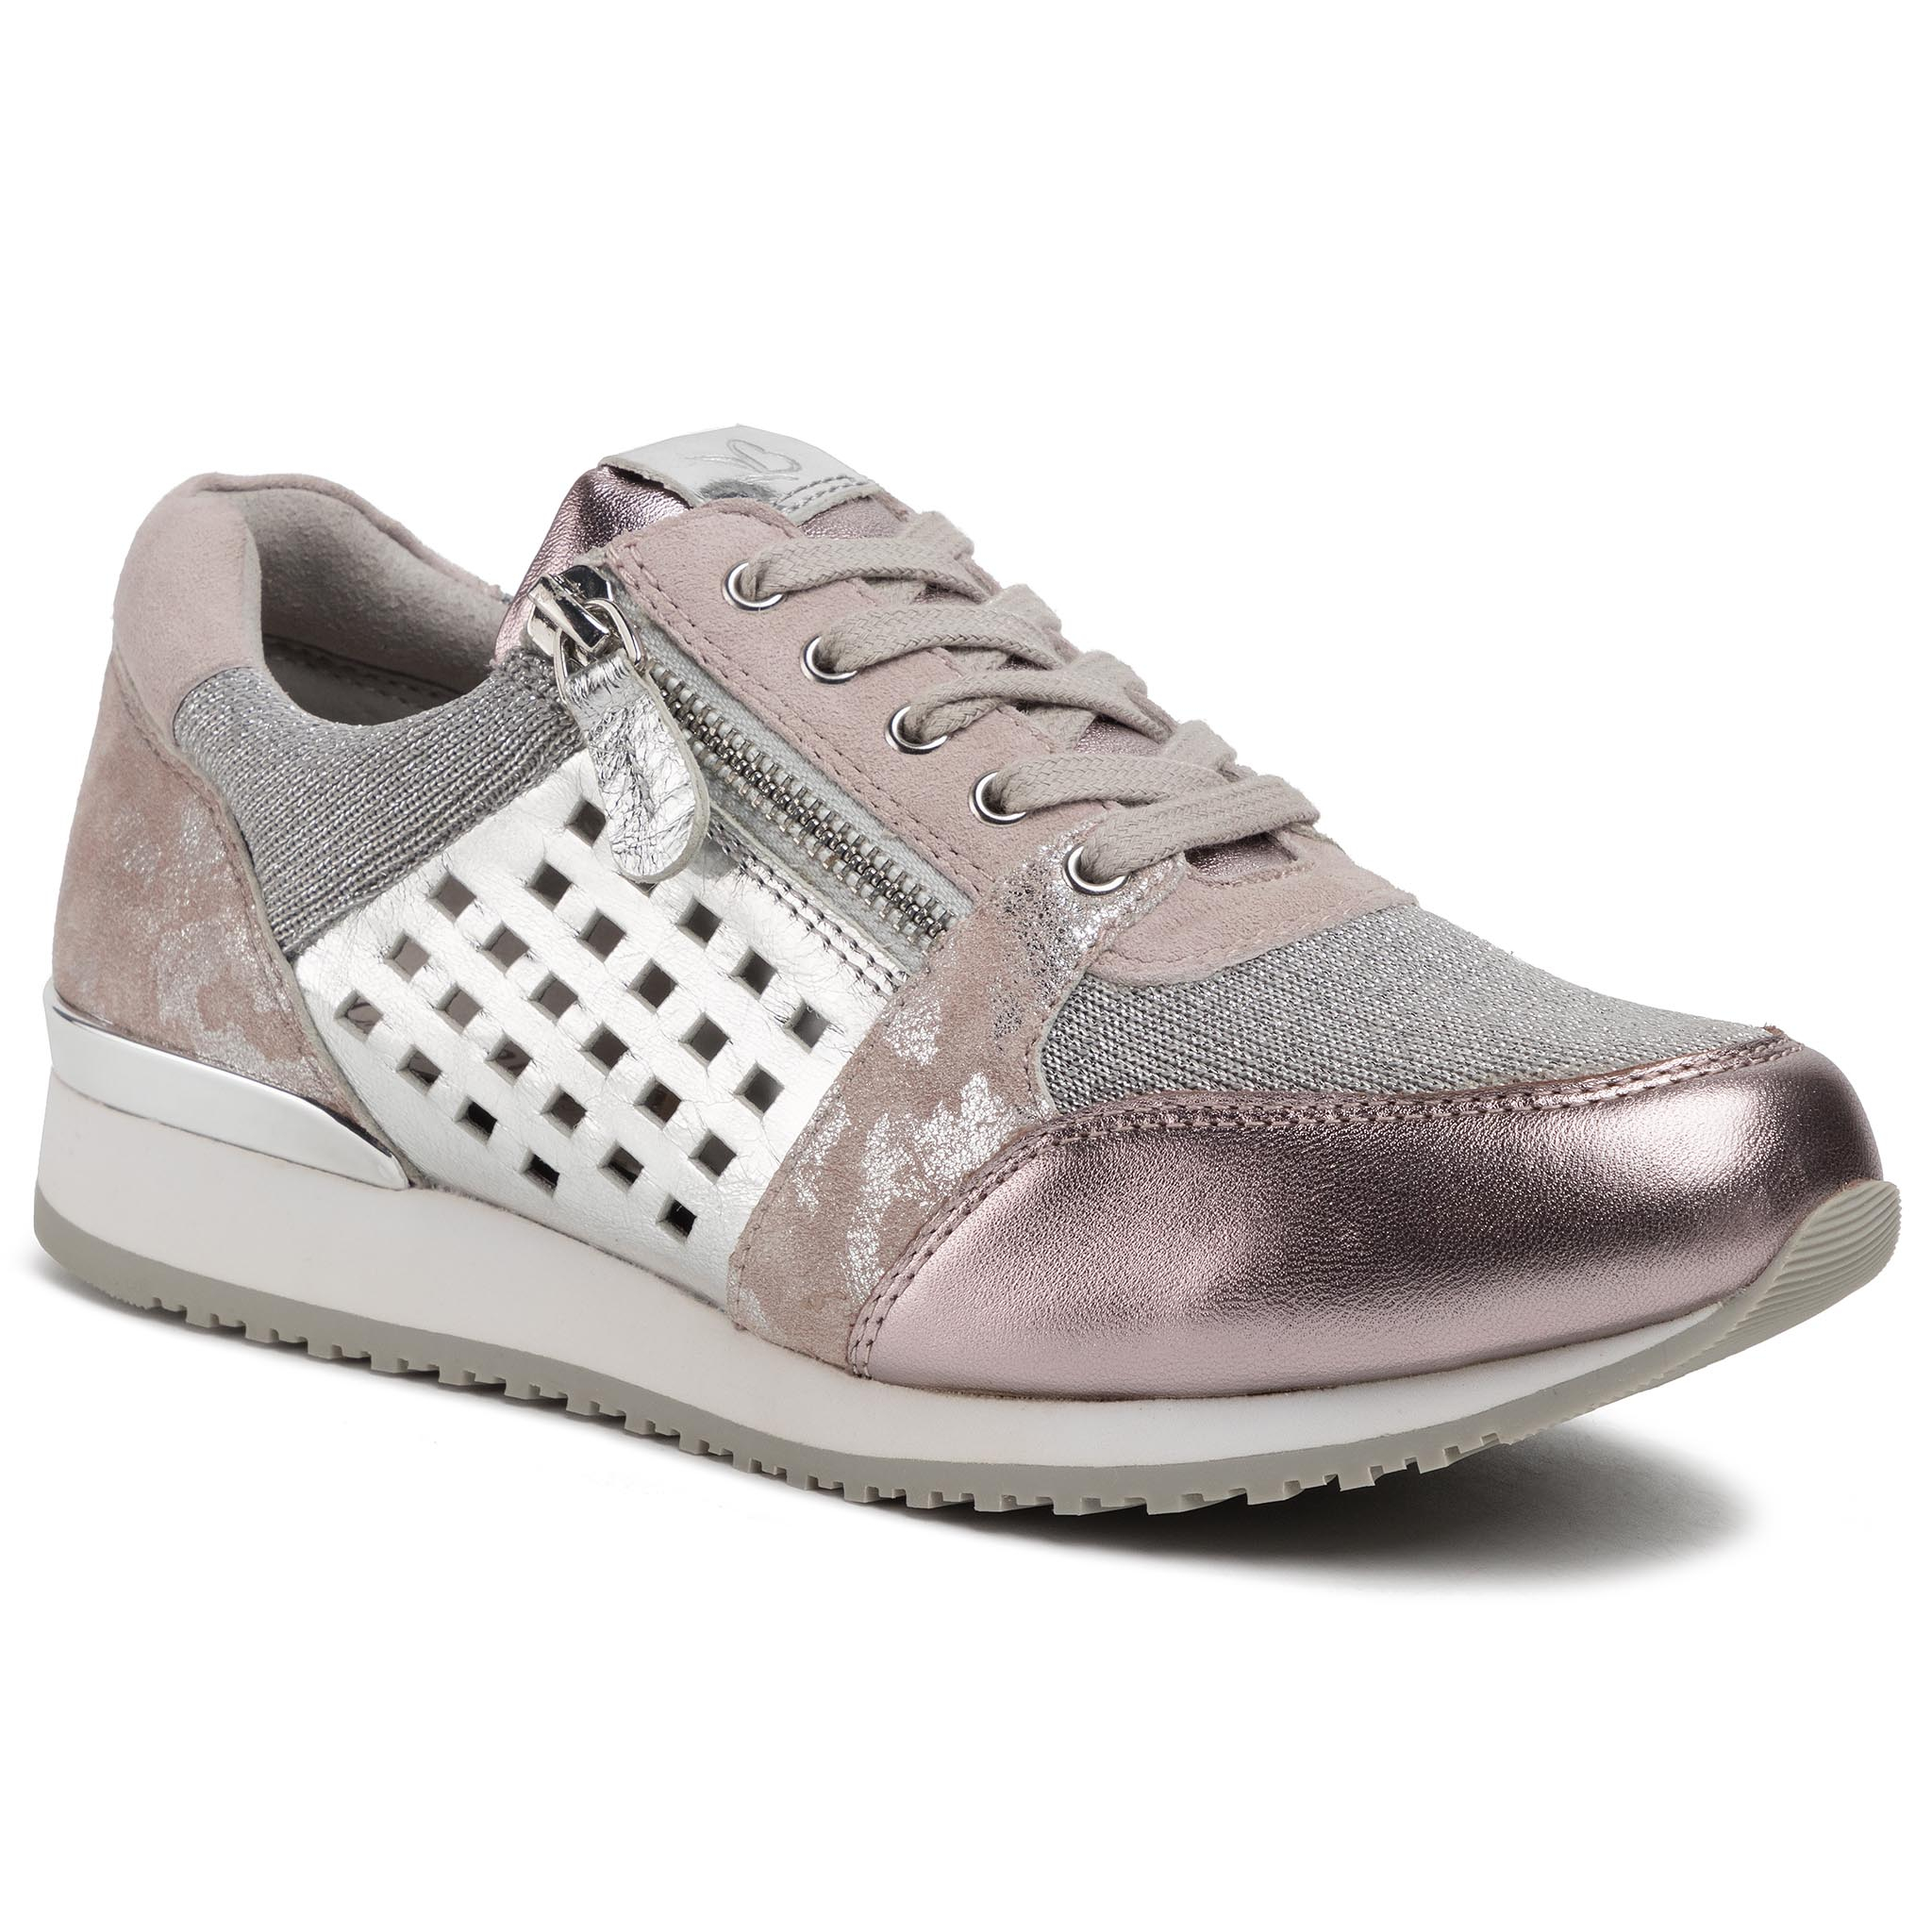 Sneakers CAPRICE - 9-23503-24 Soft Pink Comb 594